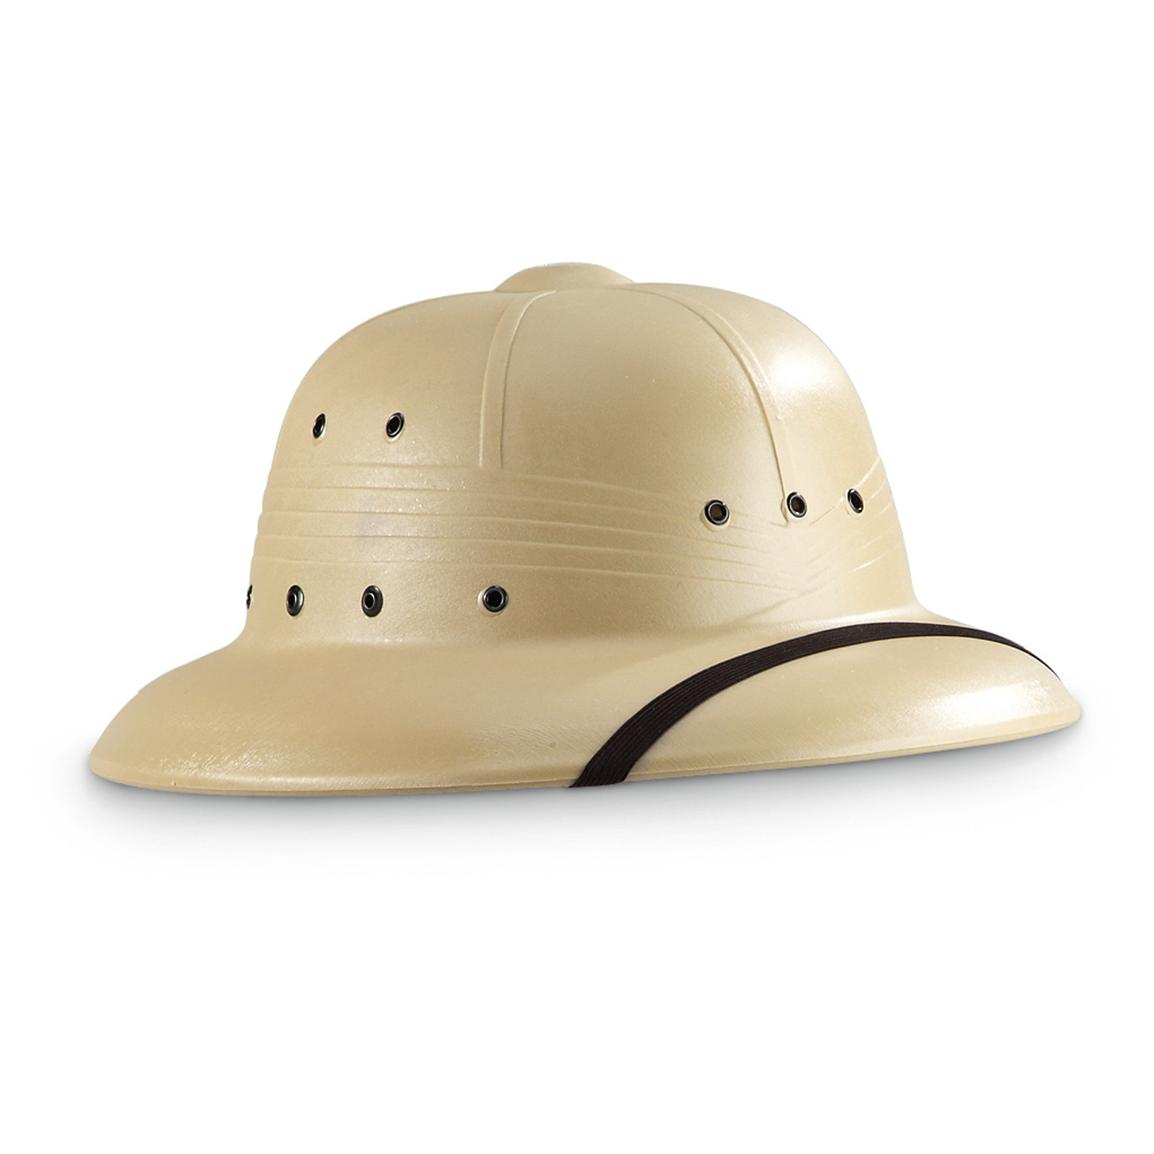 New USMC Reproduction Pith Helmet - 583600, Hats & Caps at ...